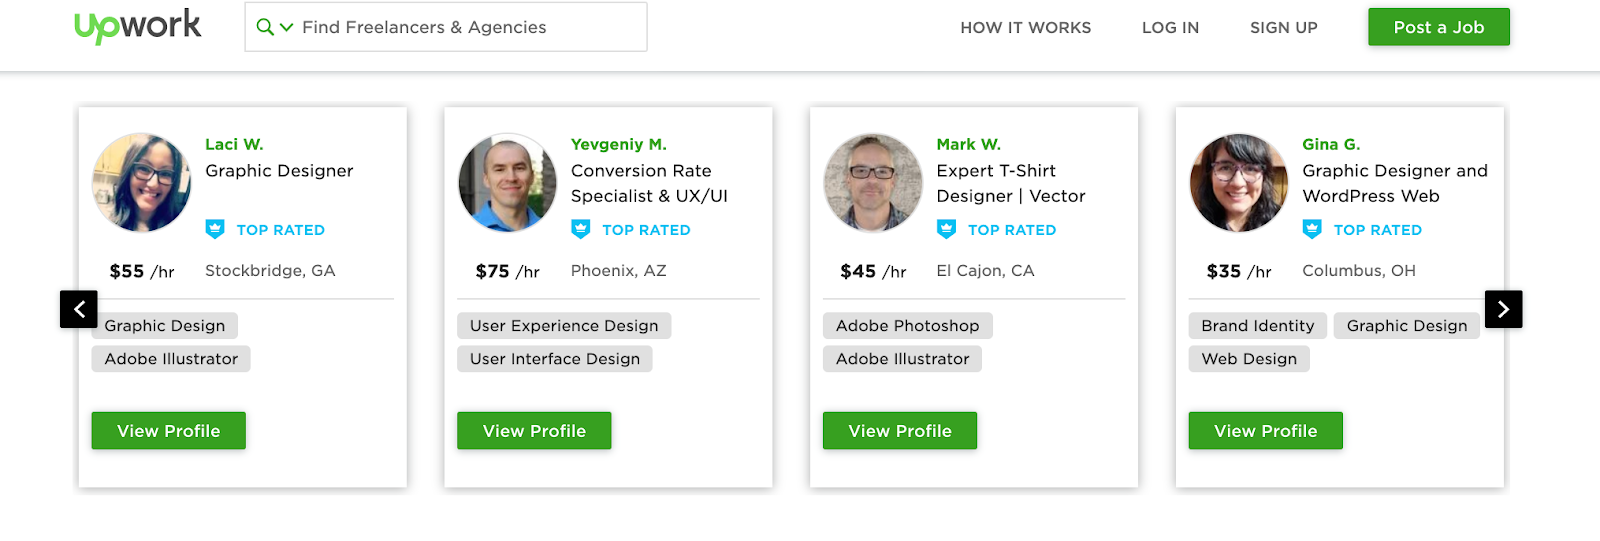 Upwork freelancer profiles